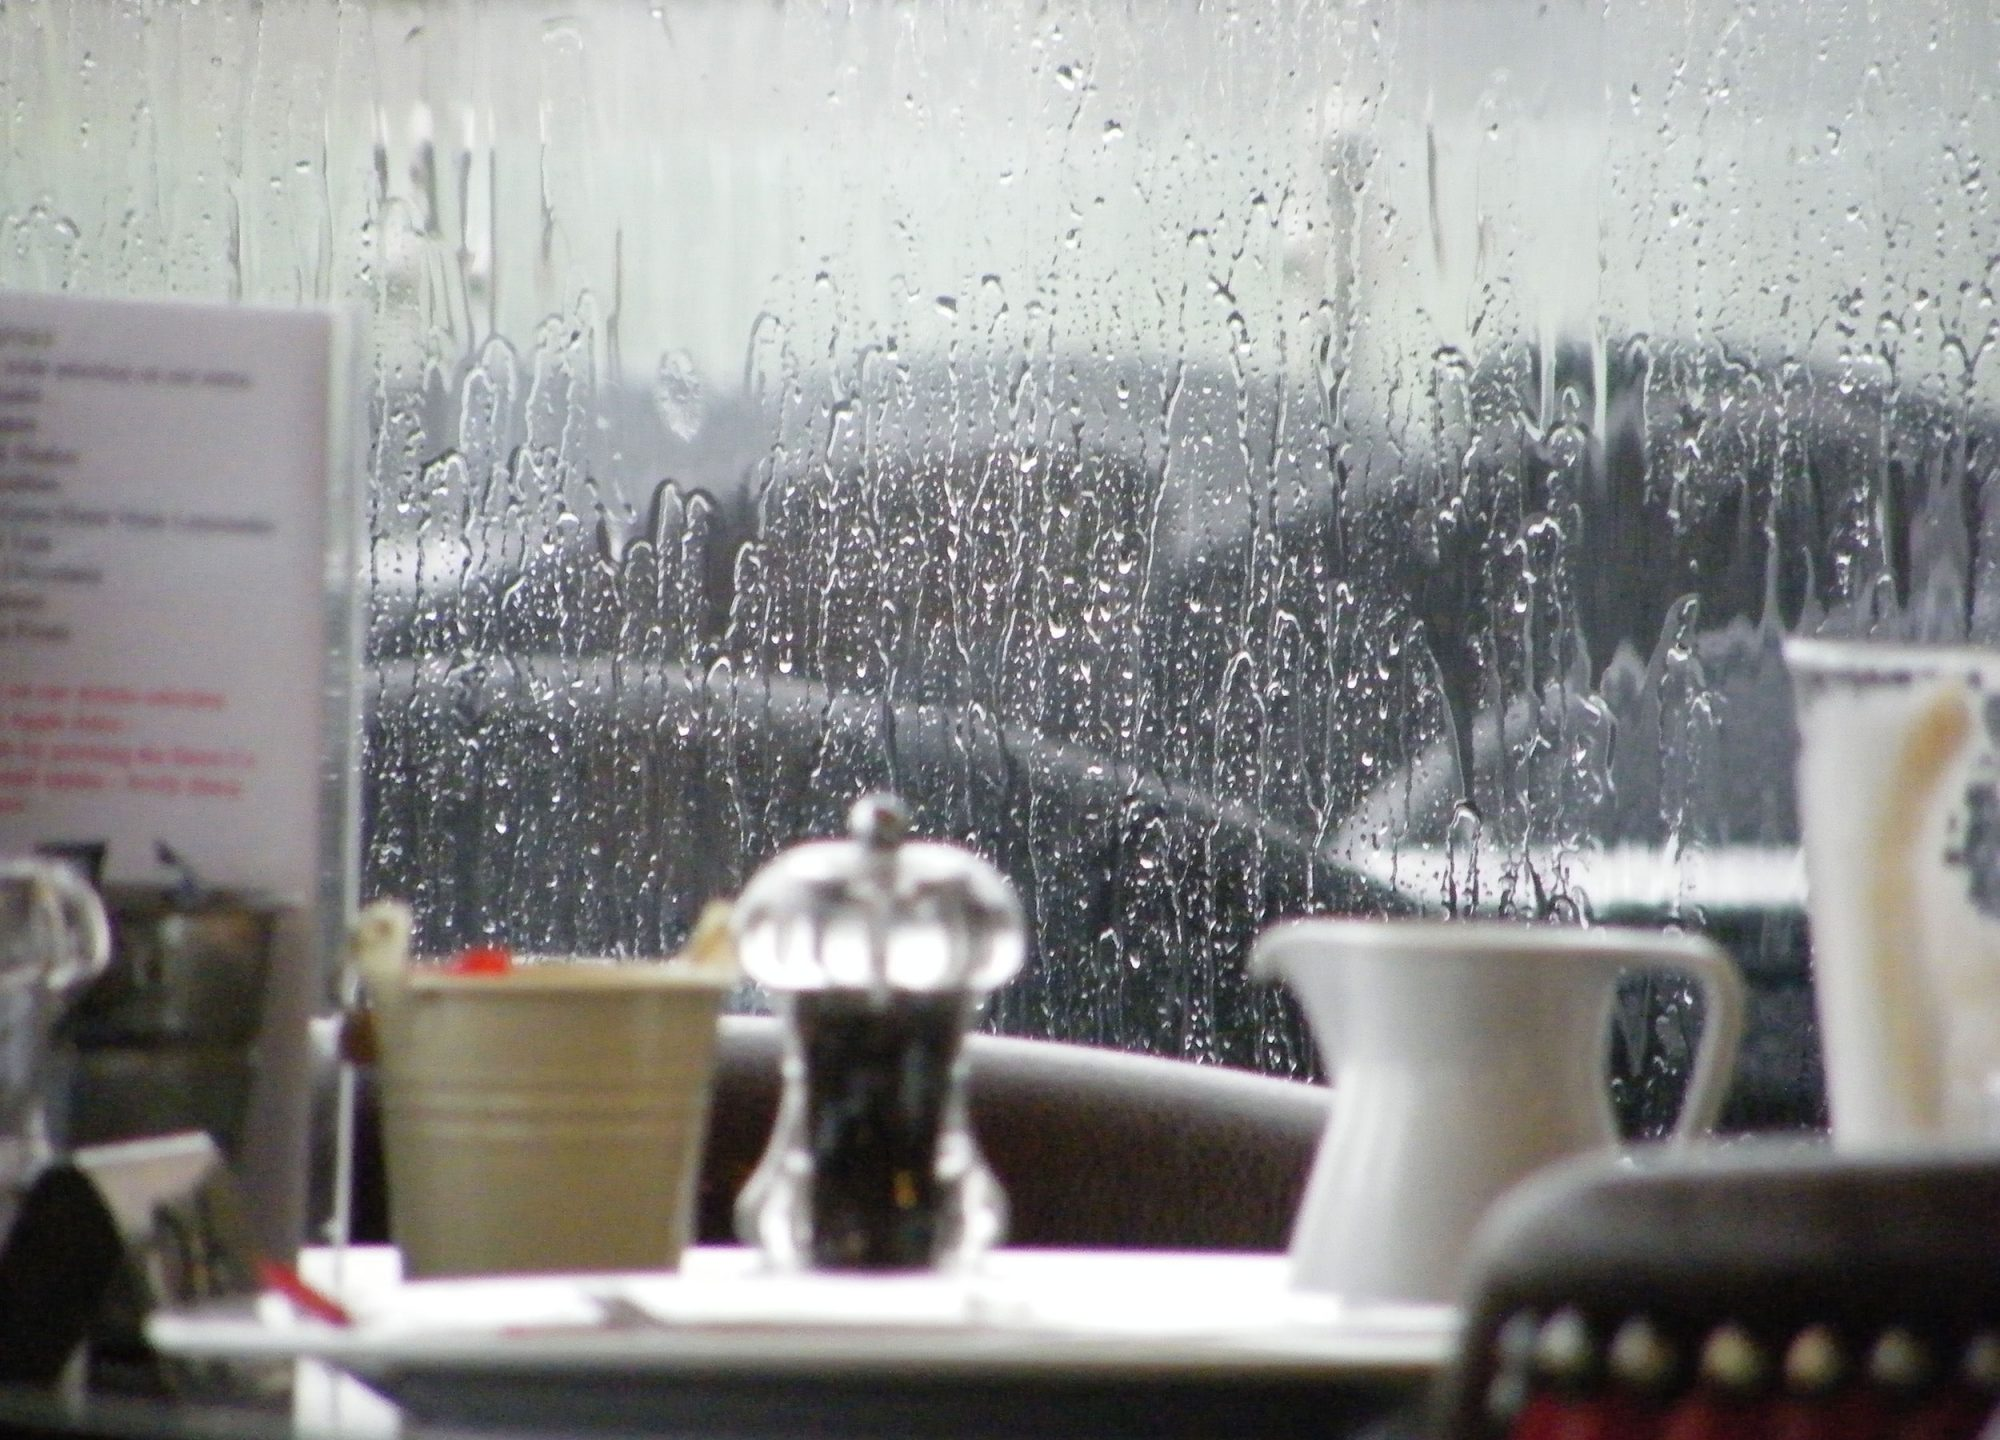 Weather-Based Restaurant Review